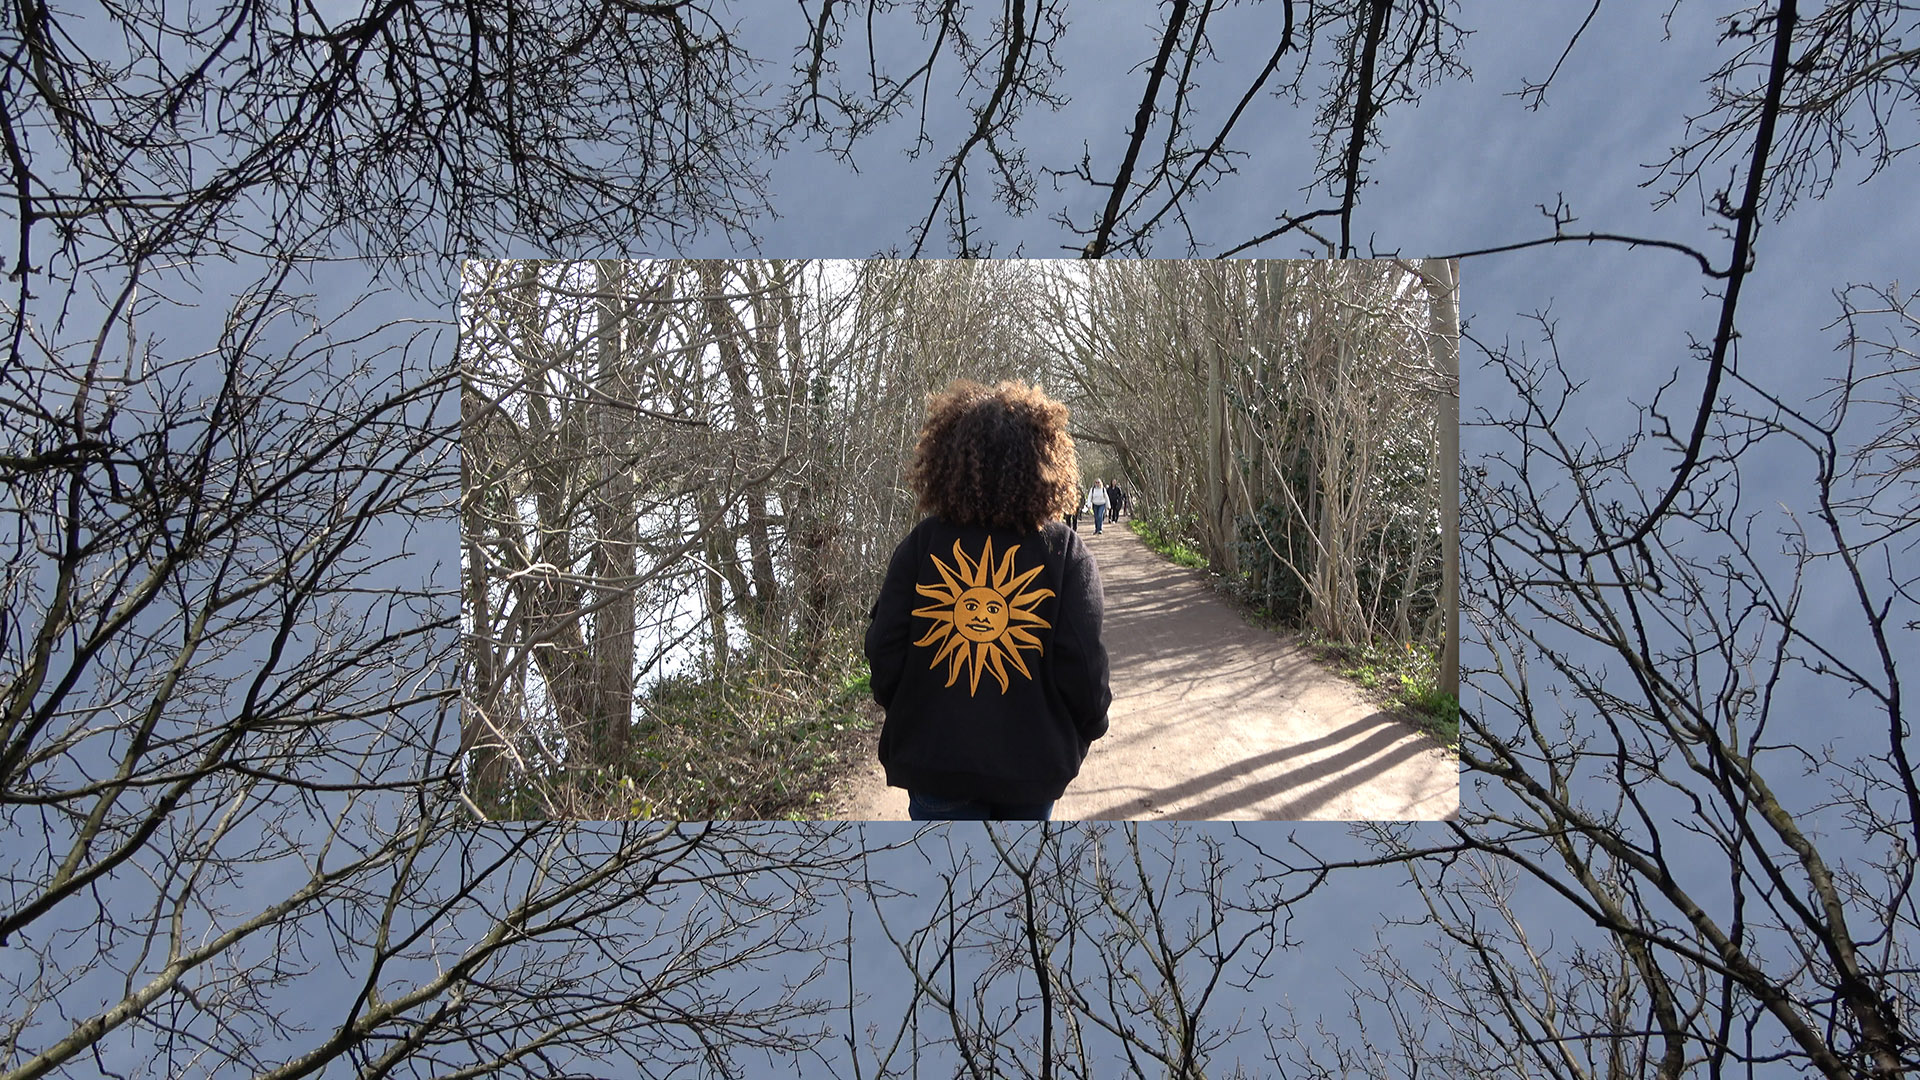 An image of Jamila from the back. She's walking down a pedestrian path lined by bare trees and a river on the left. Jamila is wearing a black jacket which has an image of a yellow sun with a face on the back. The image is overlaid on a larger image of blue sky with bare tree branches coming into the frame from all sides.